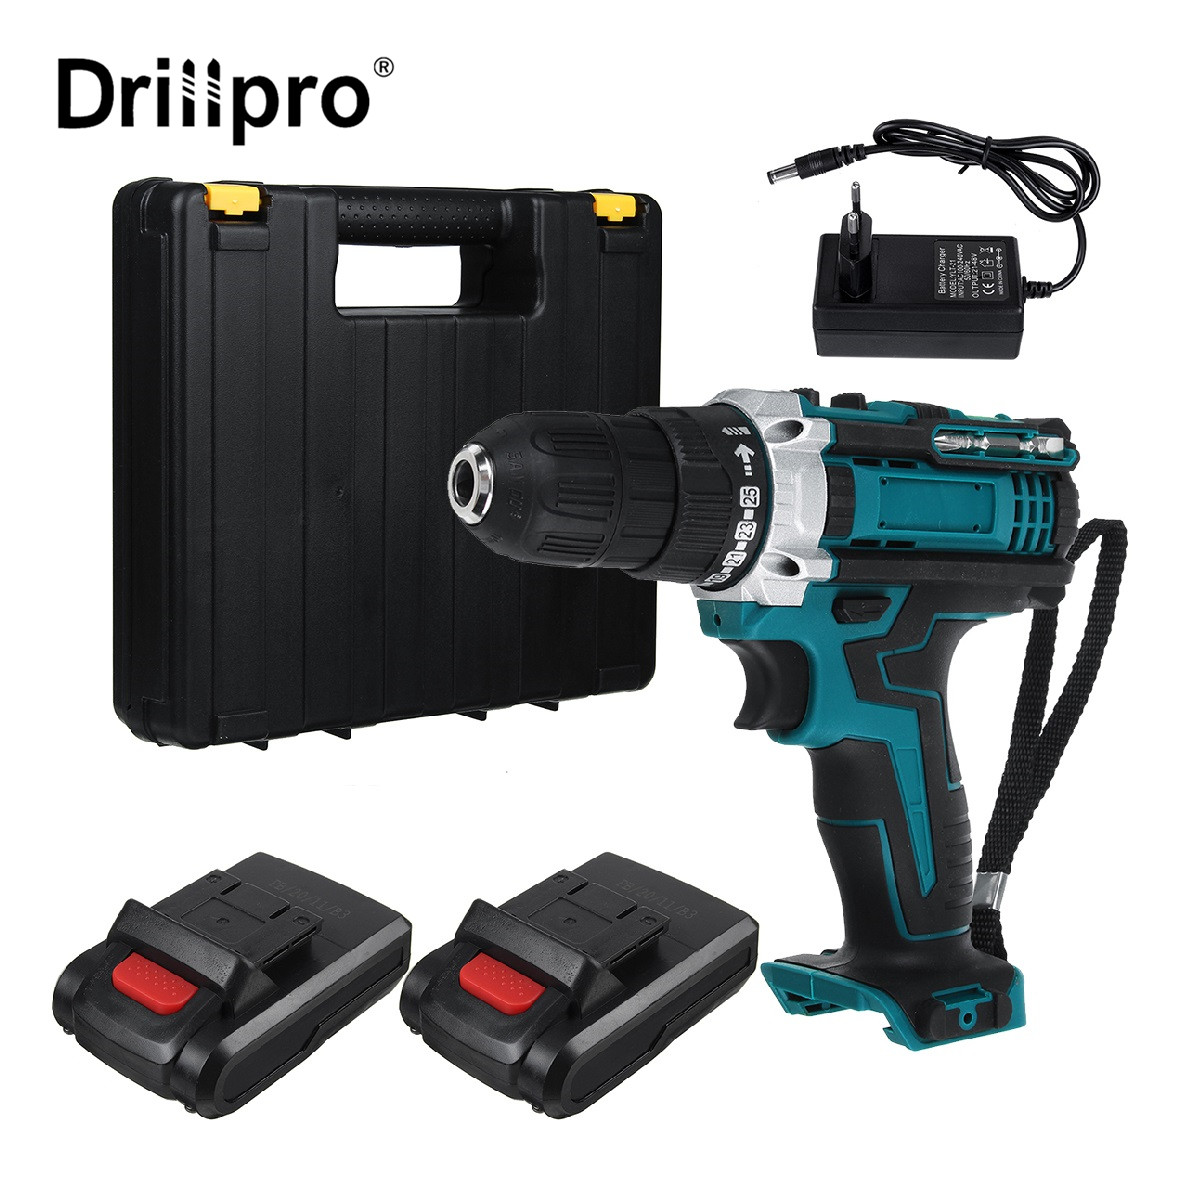 25+3/25+1 Torque Cordless Brushless Electric Drill Impact Screwdriver Rechargable Power Tool with Battery & Box